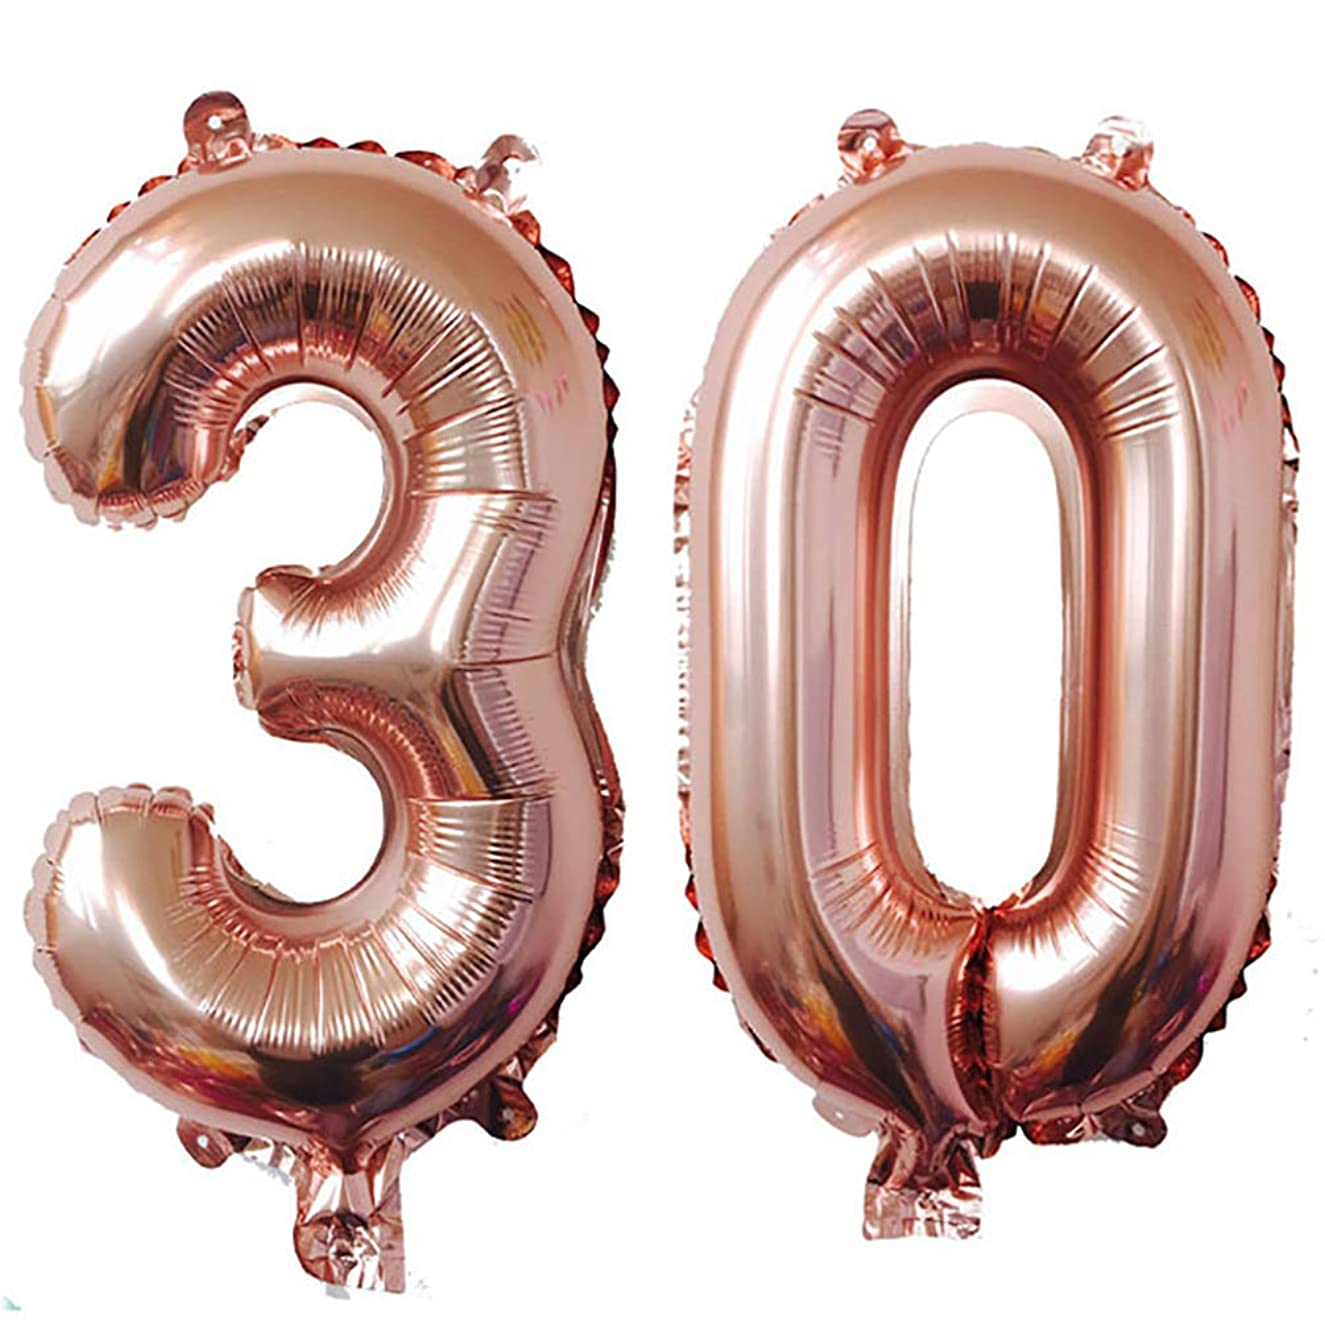 AZOWA Big 30 Balloons Jumbo Number 30 Balloons Rose Gold for 30th Birthday Party Decorations (Rose Gold, 40 in)